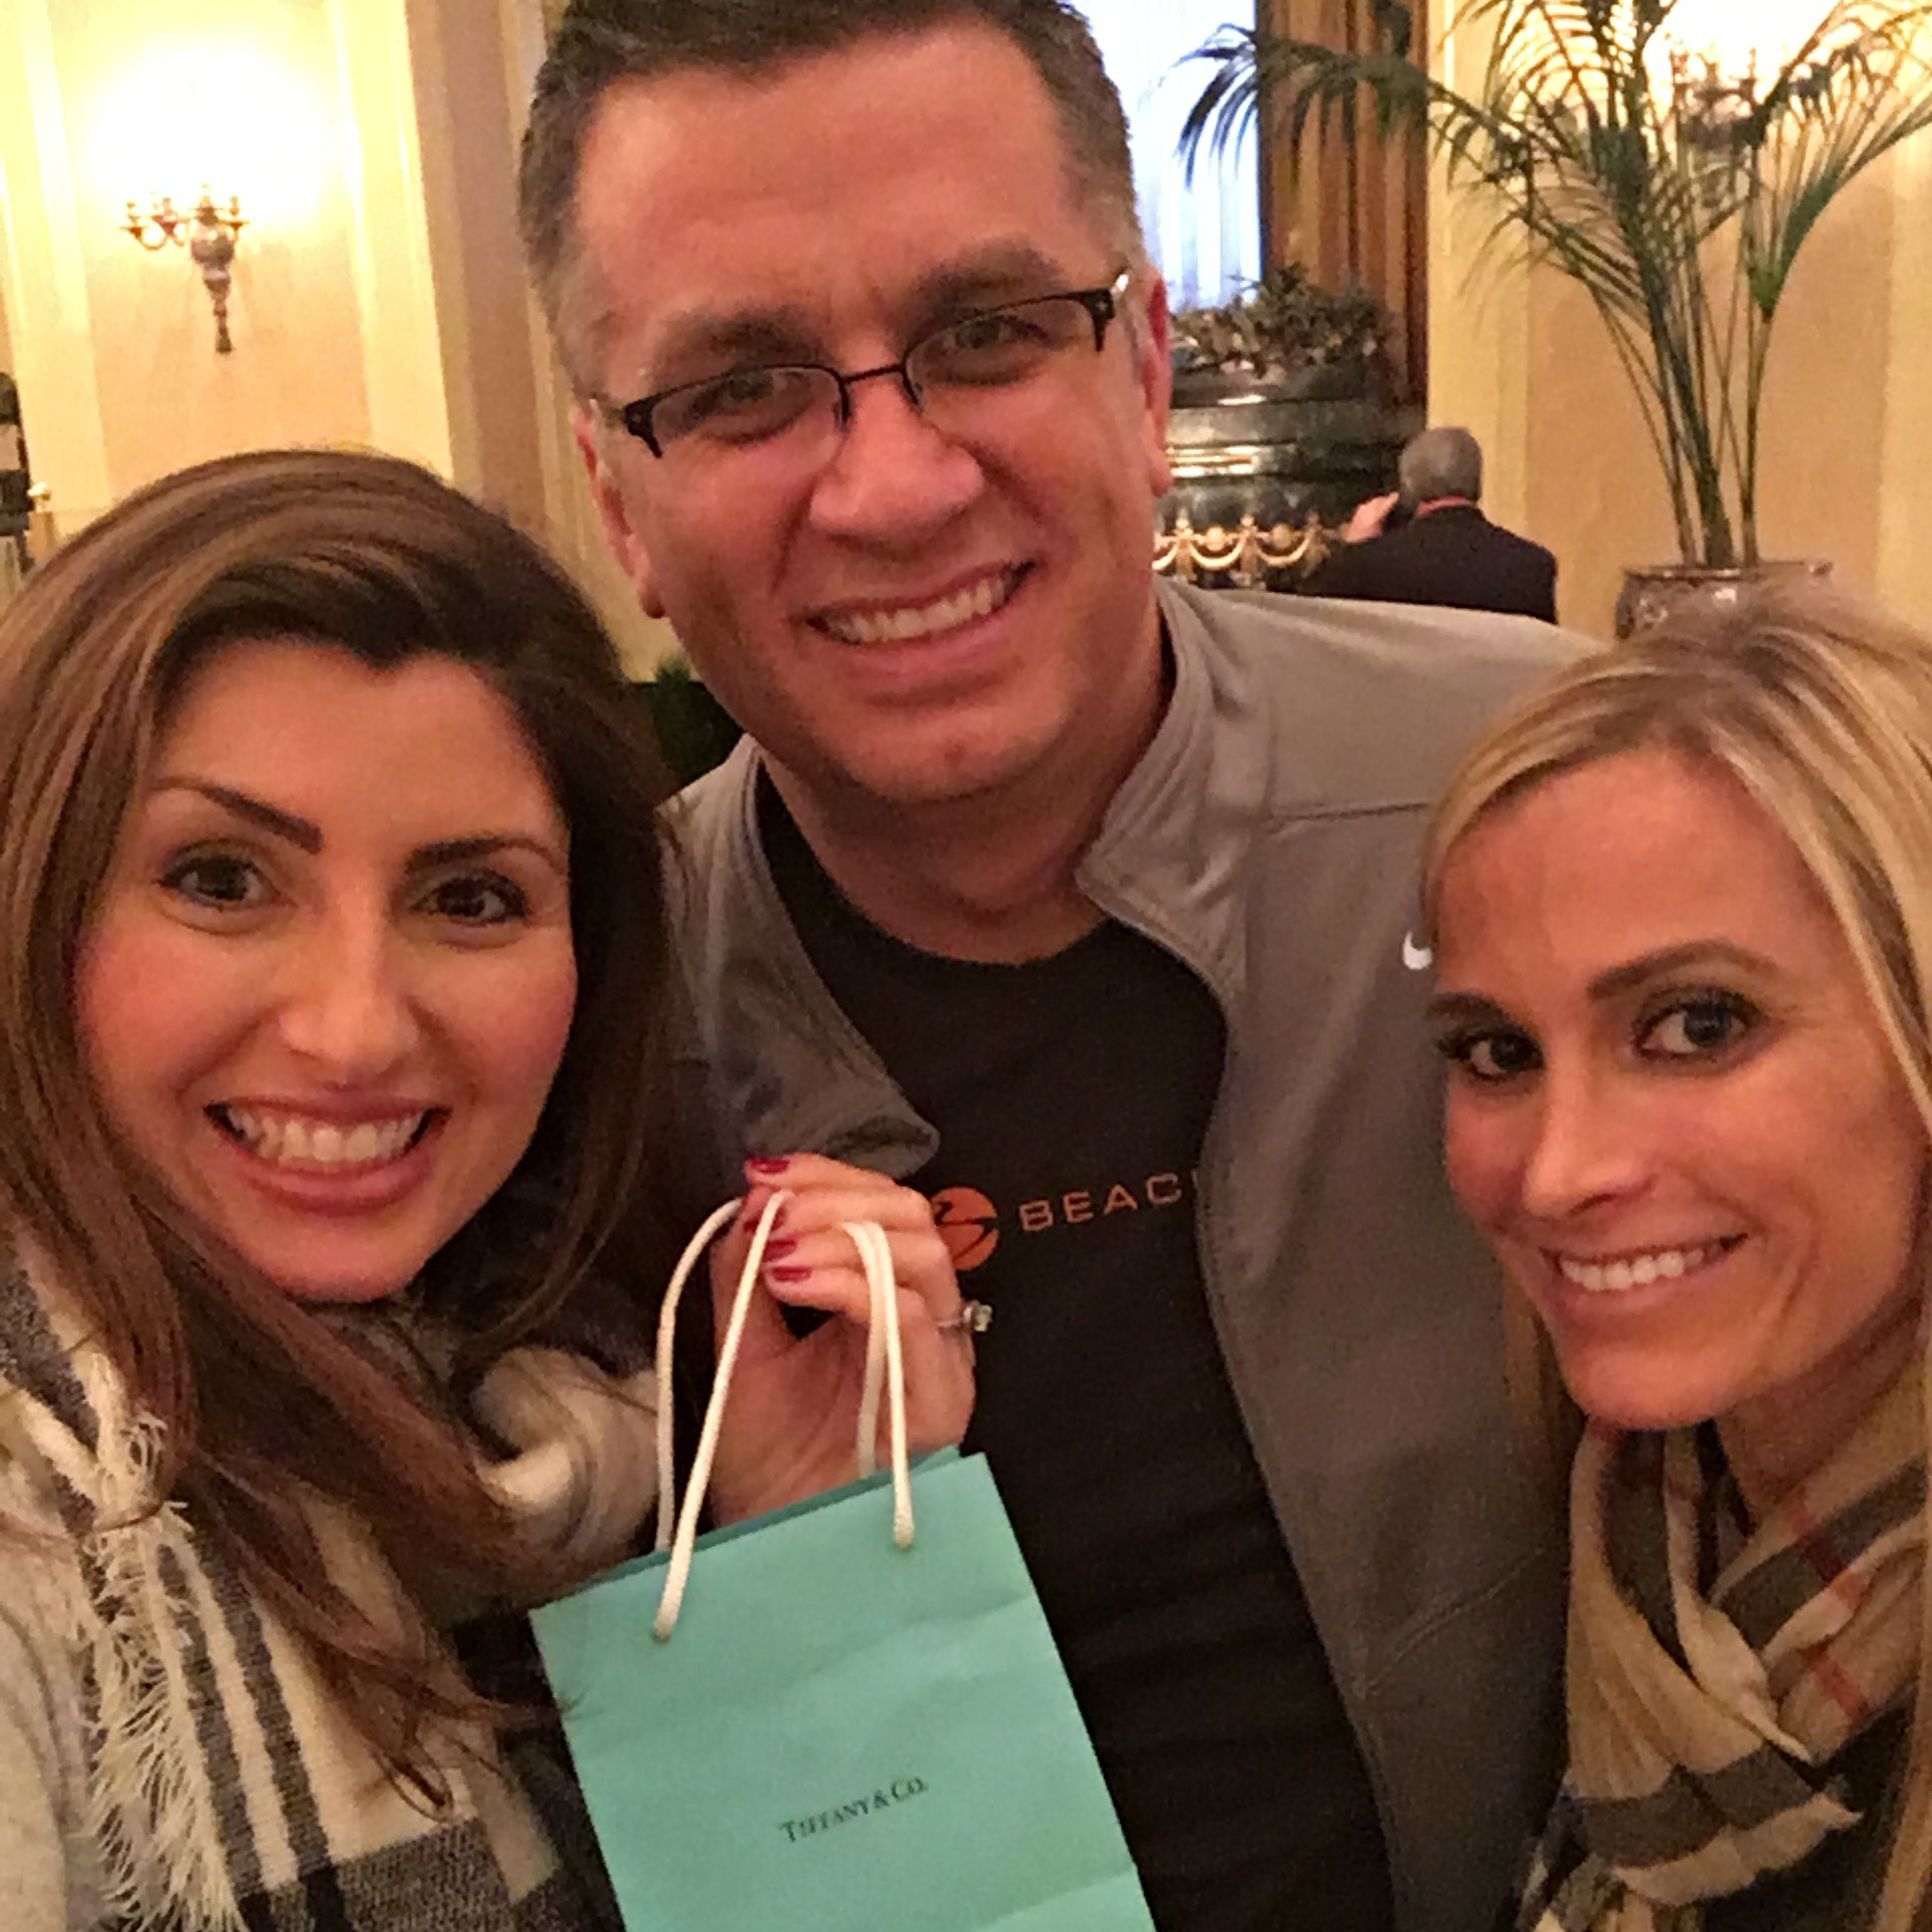 received a tiffany necklace for becoming a 1 star diamond coach and had a private meeting with the sr. director of field development